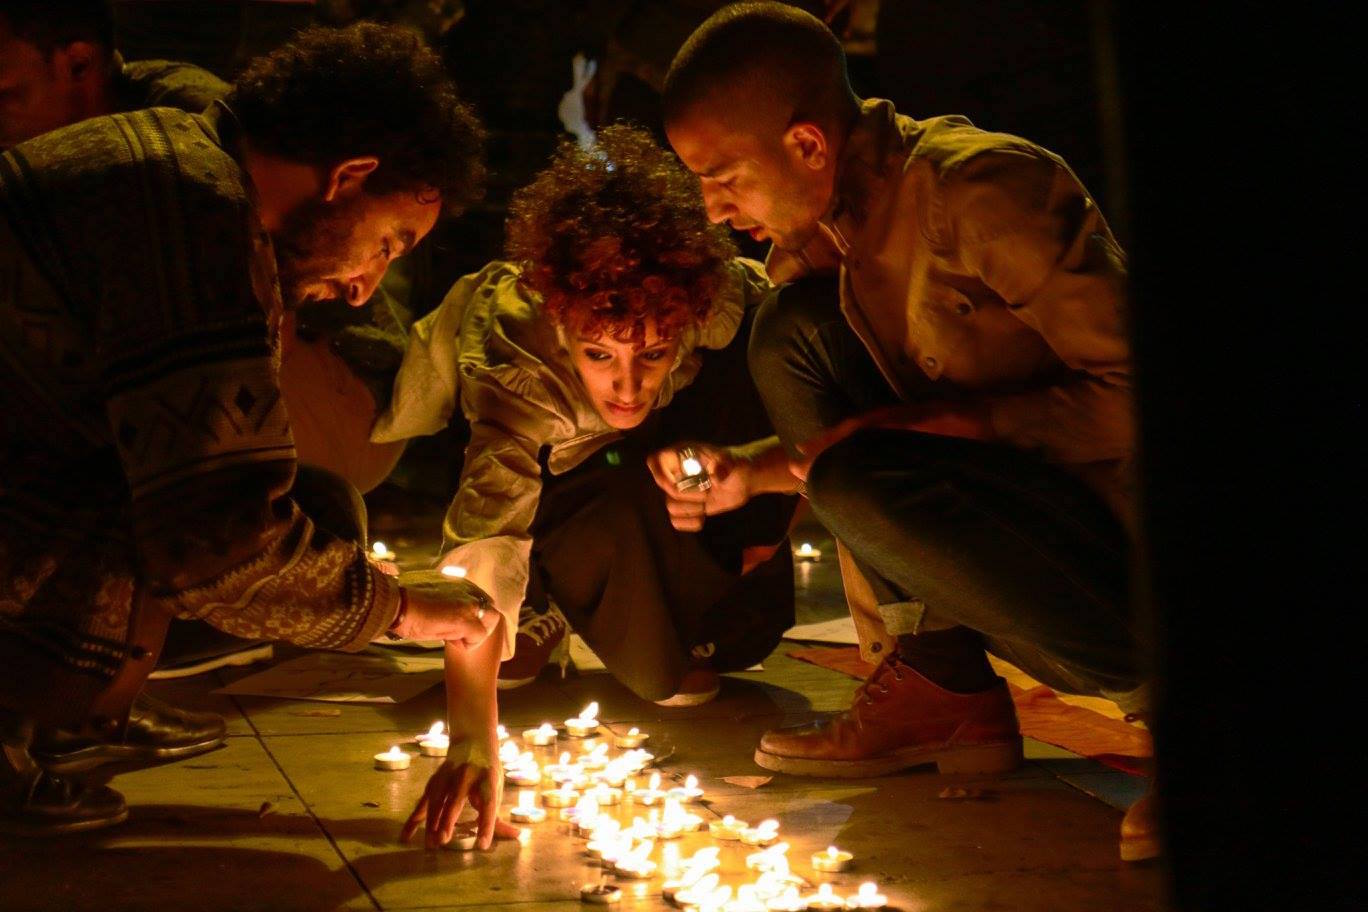 In Pictures: Rabat Remembers Pulse Nightclub Victims in Orlando